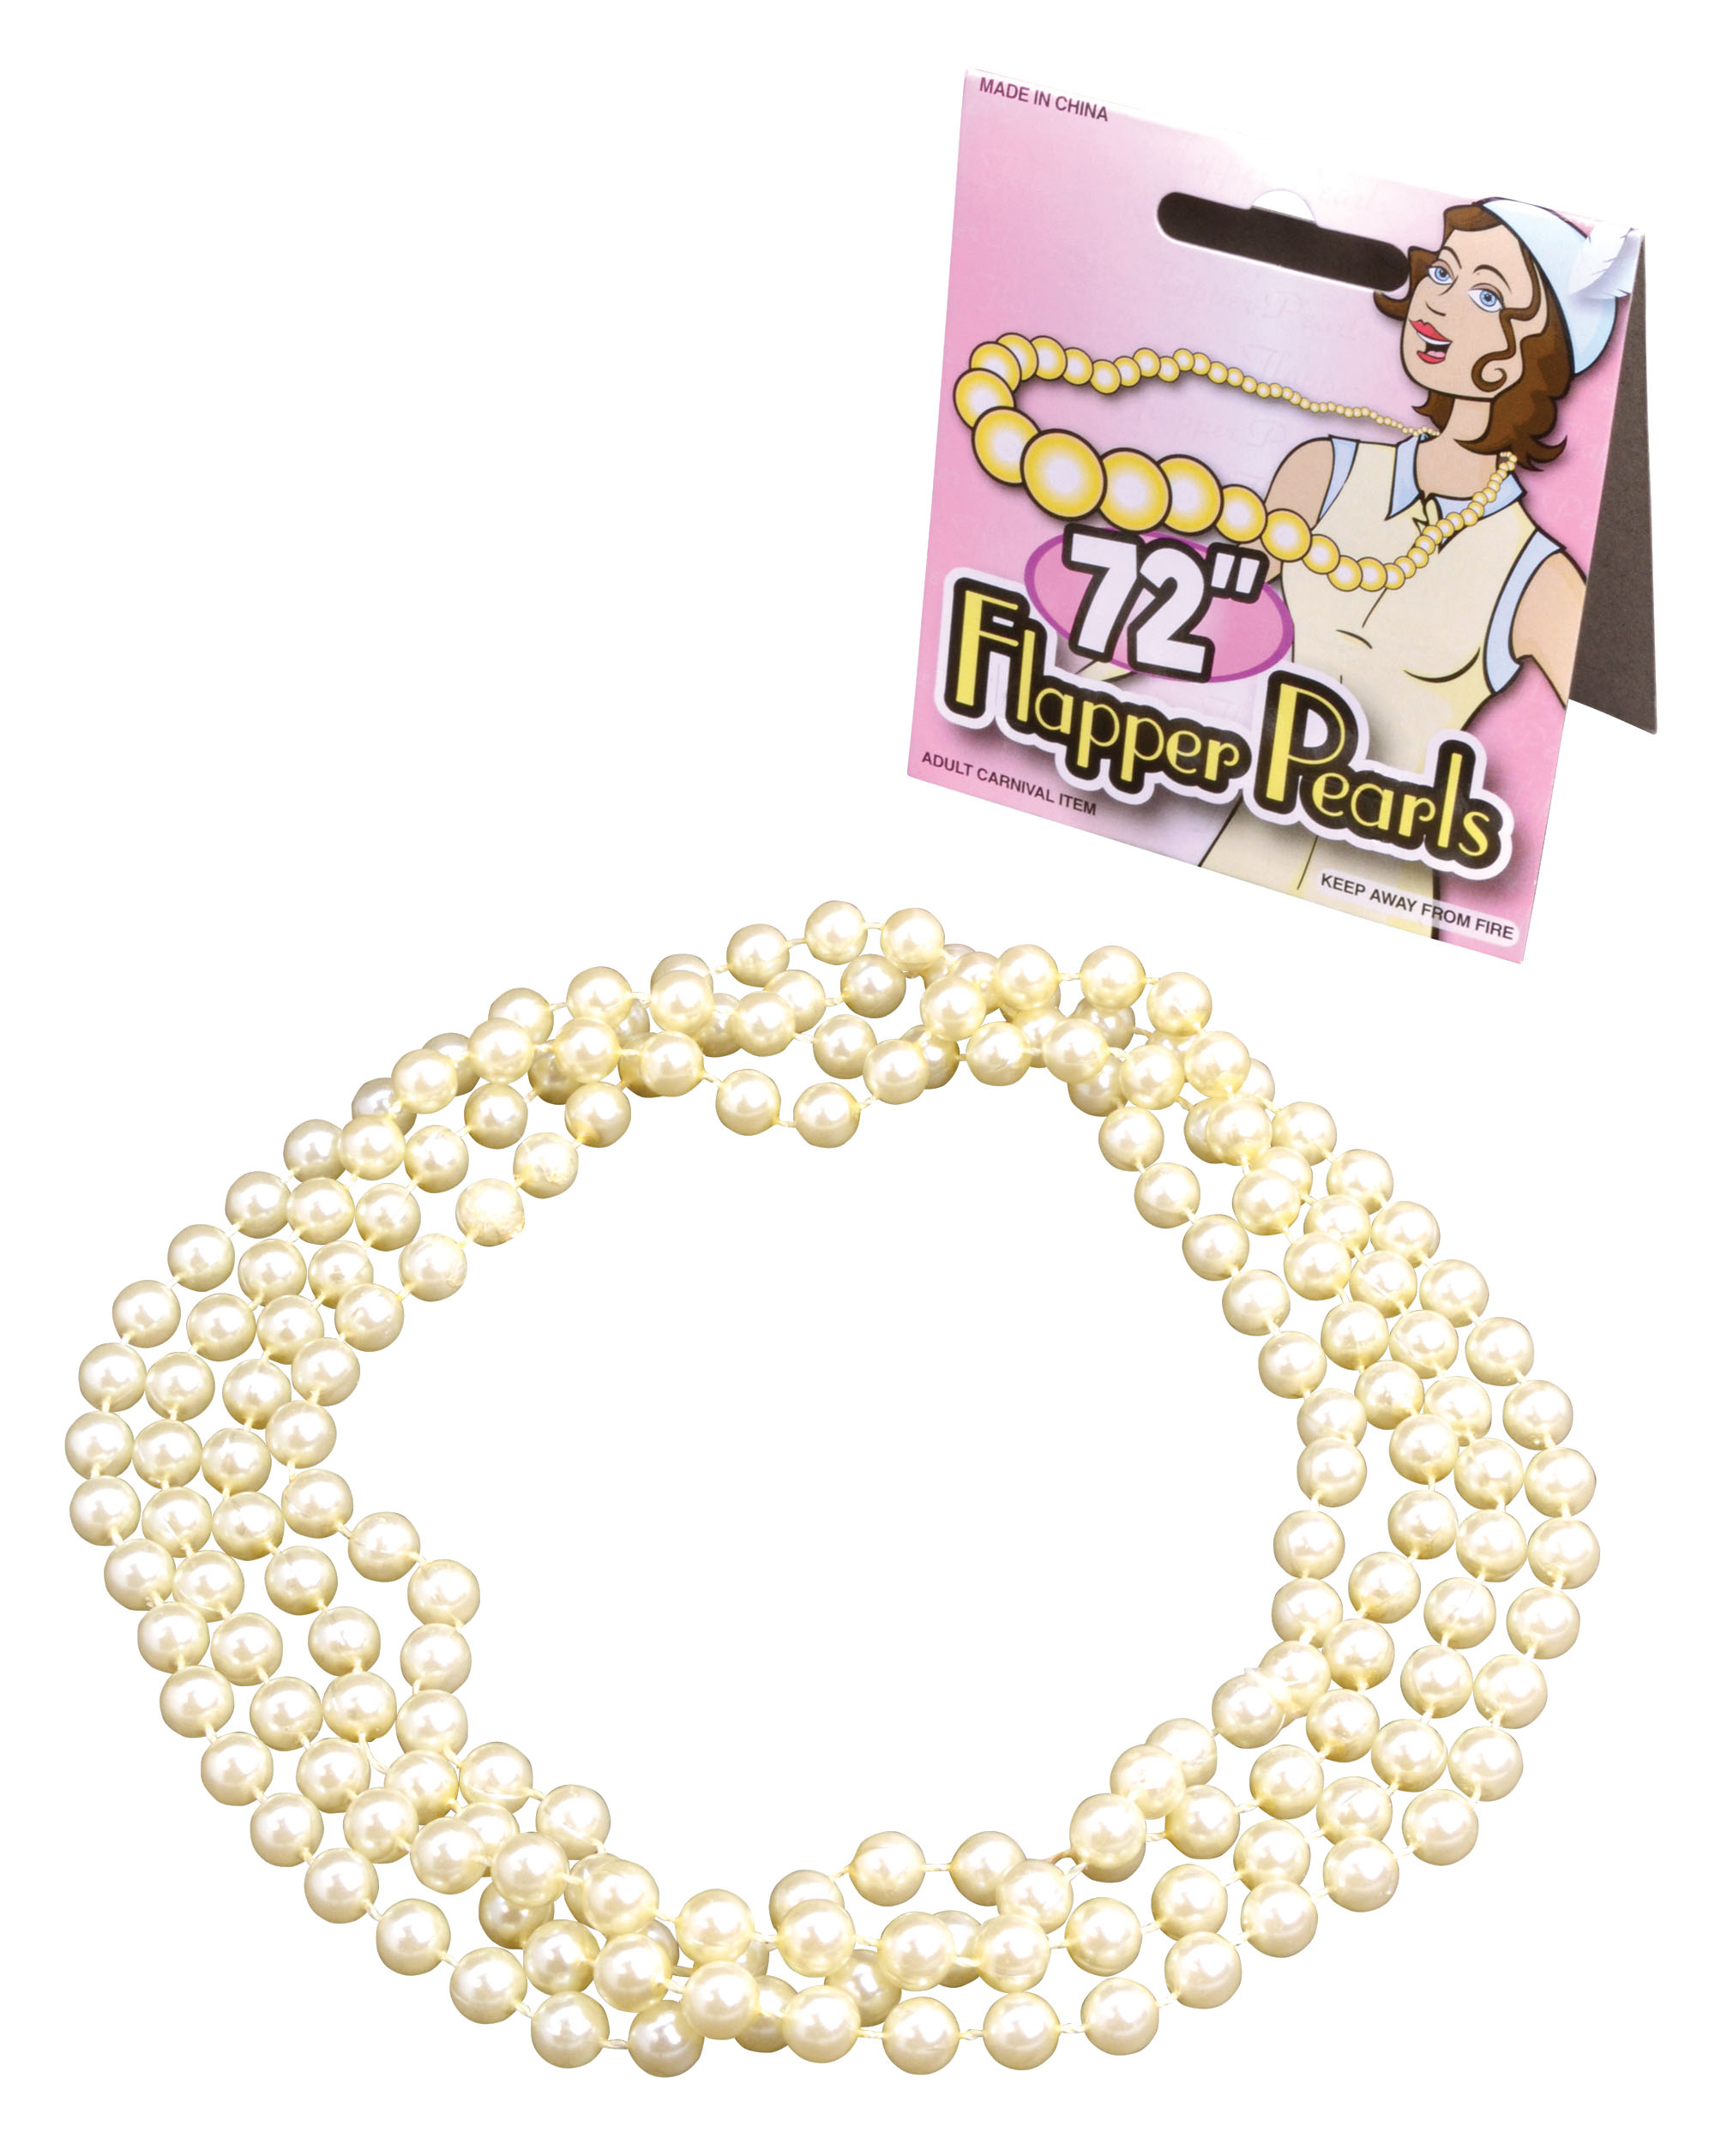 1920s Pearl Flapper Beads